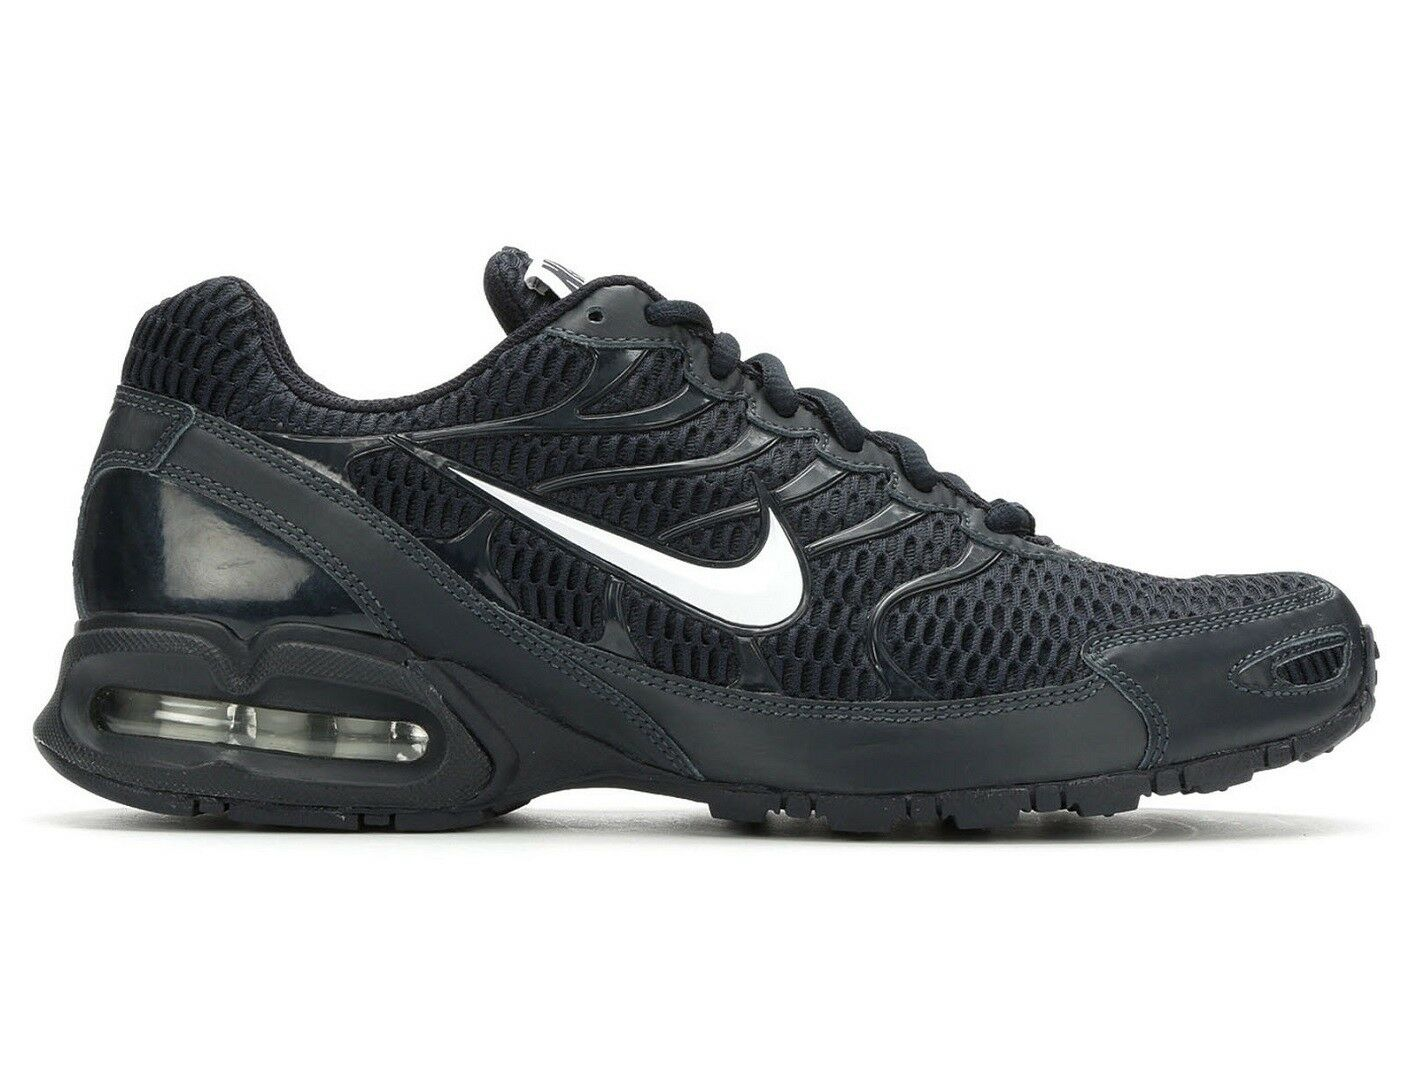 Nike Air Max Torch 4 Mens 343846-400 Dark Obsidian White Running Shoes Size 8.5